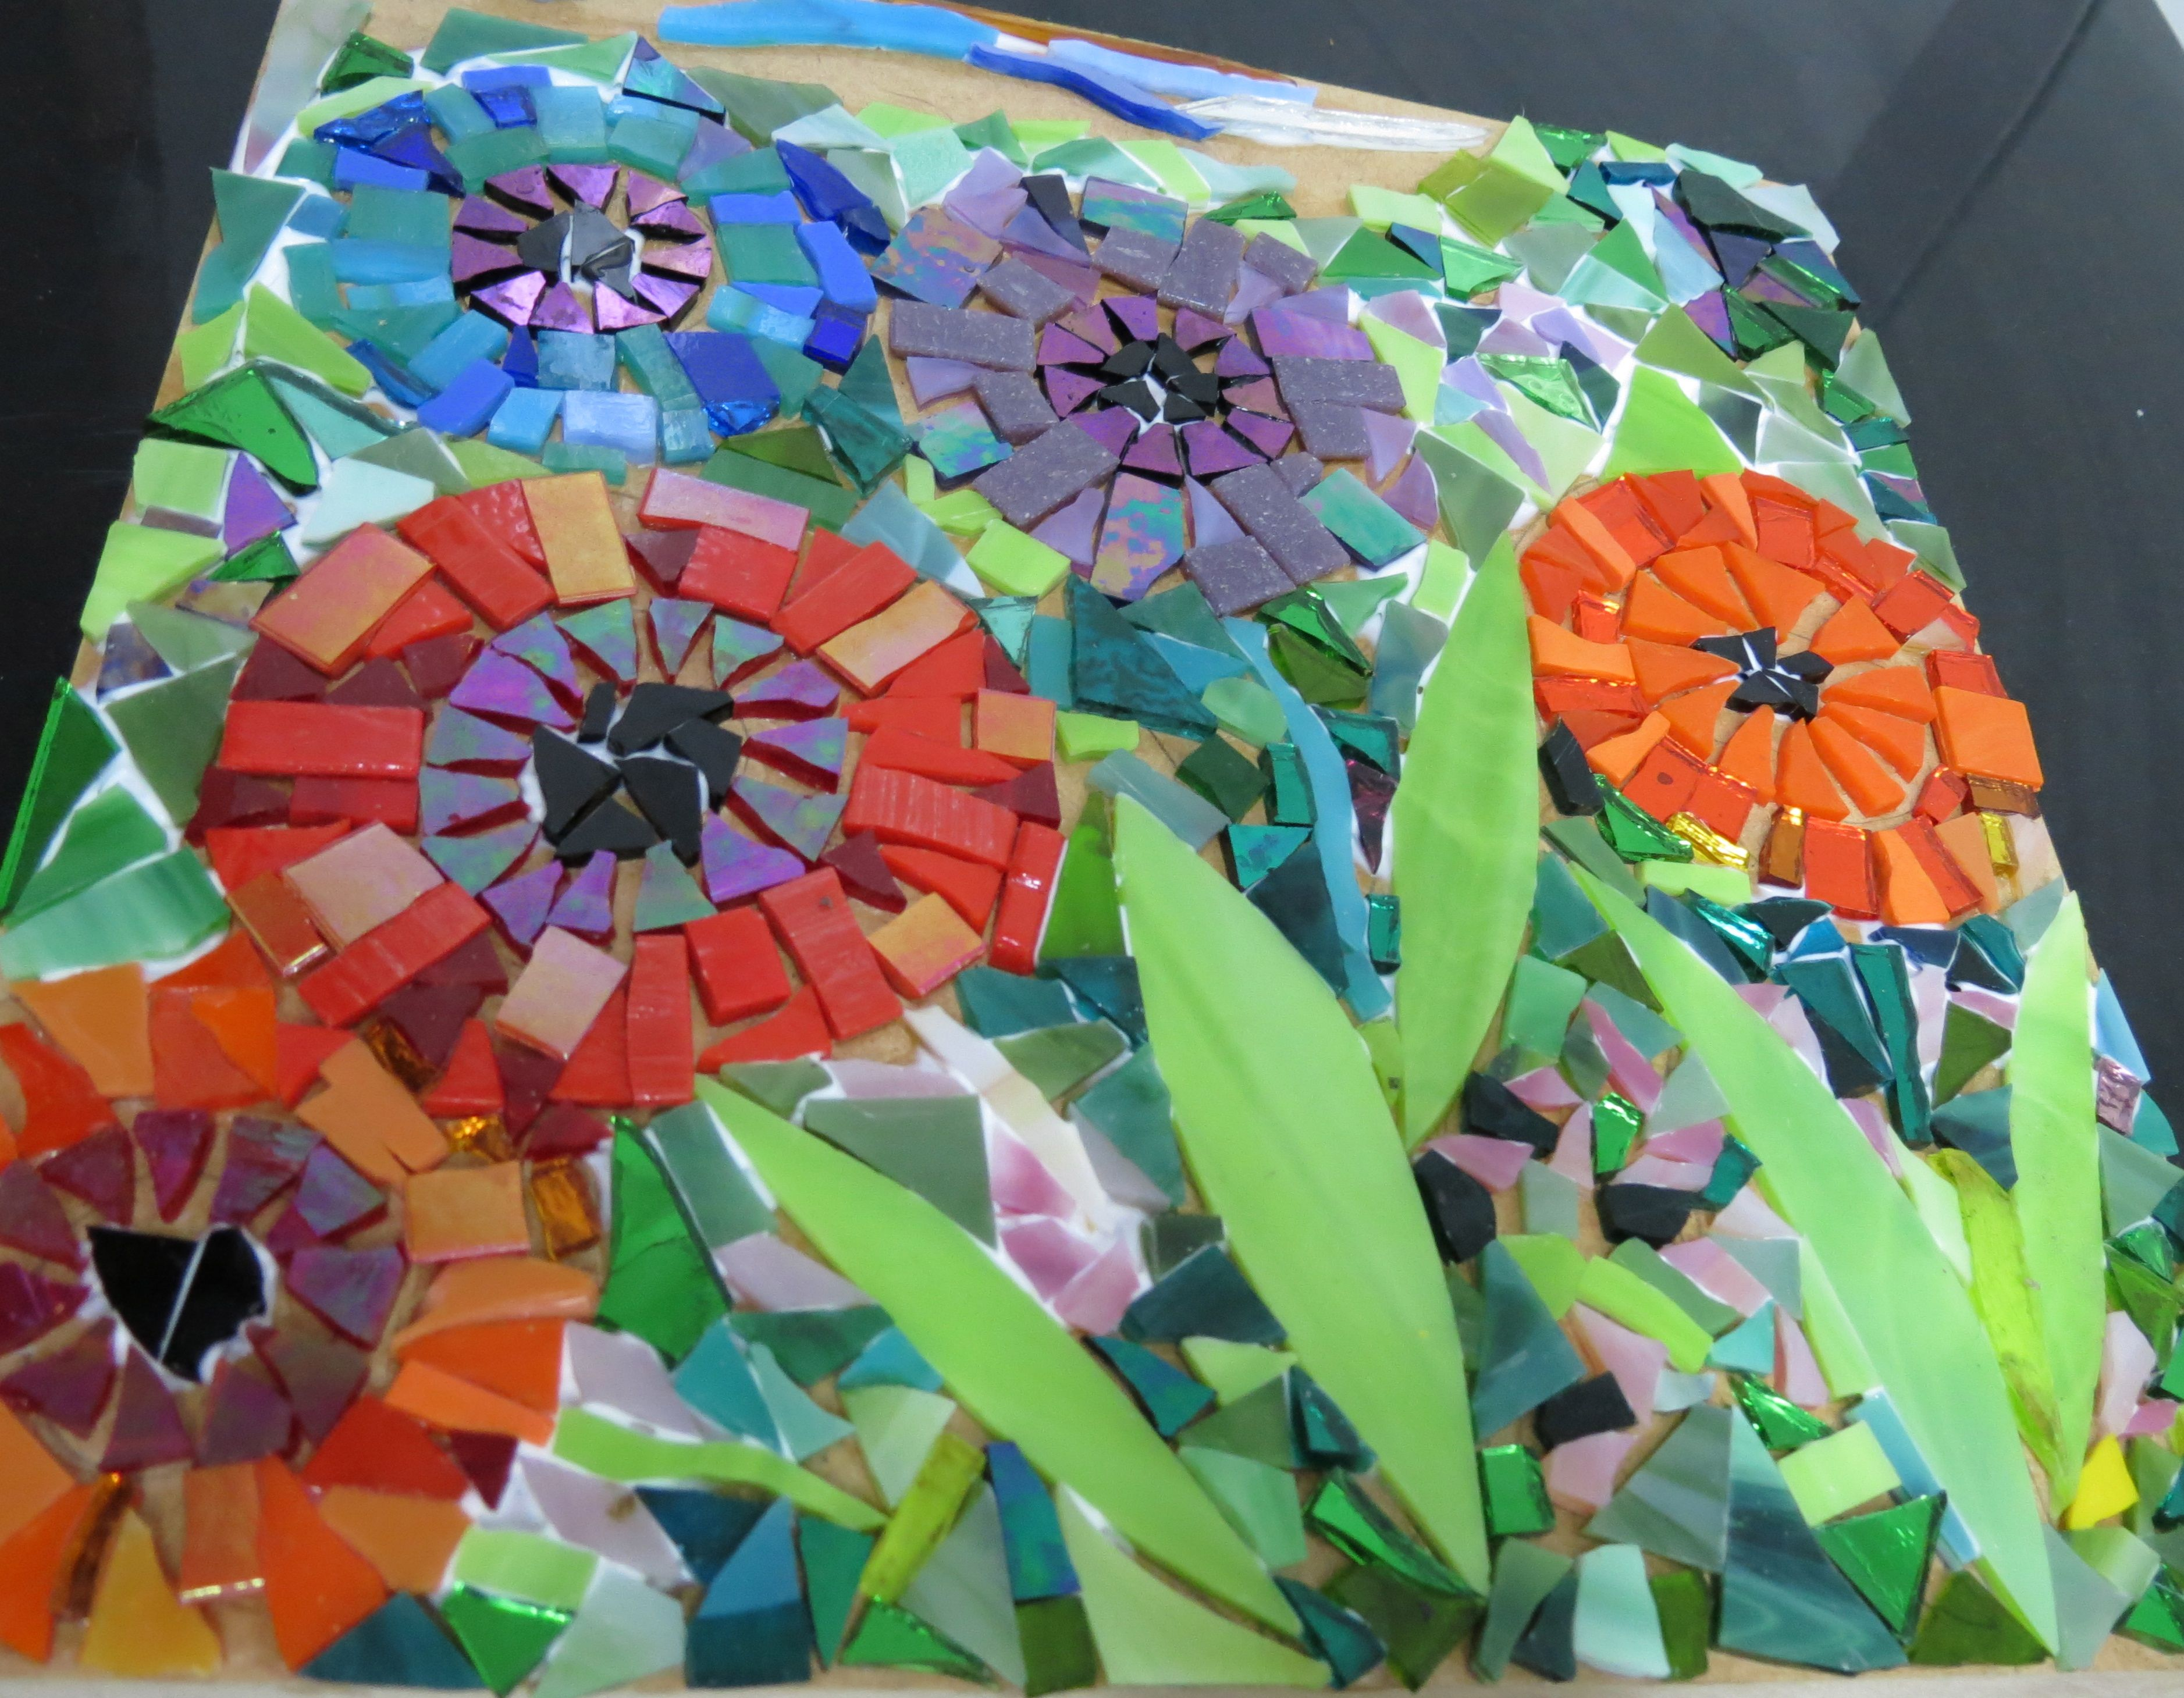 Pin by clauvrarei on mosaic work in progress by kat gottke ...